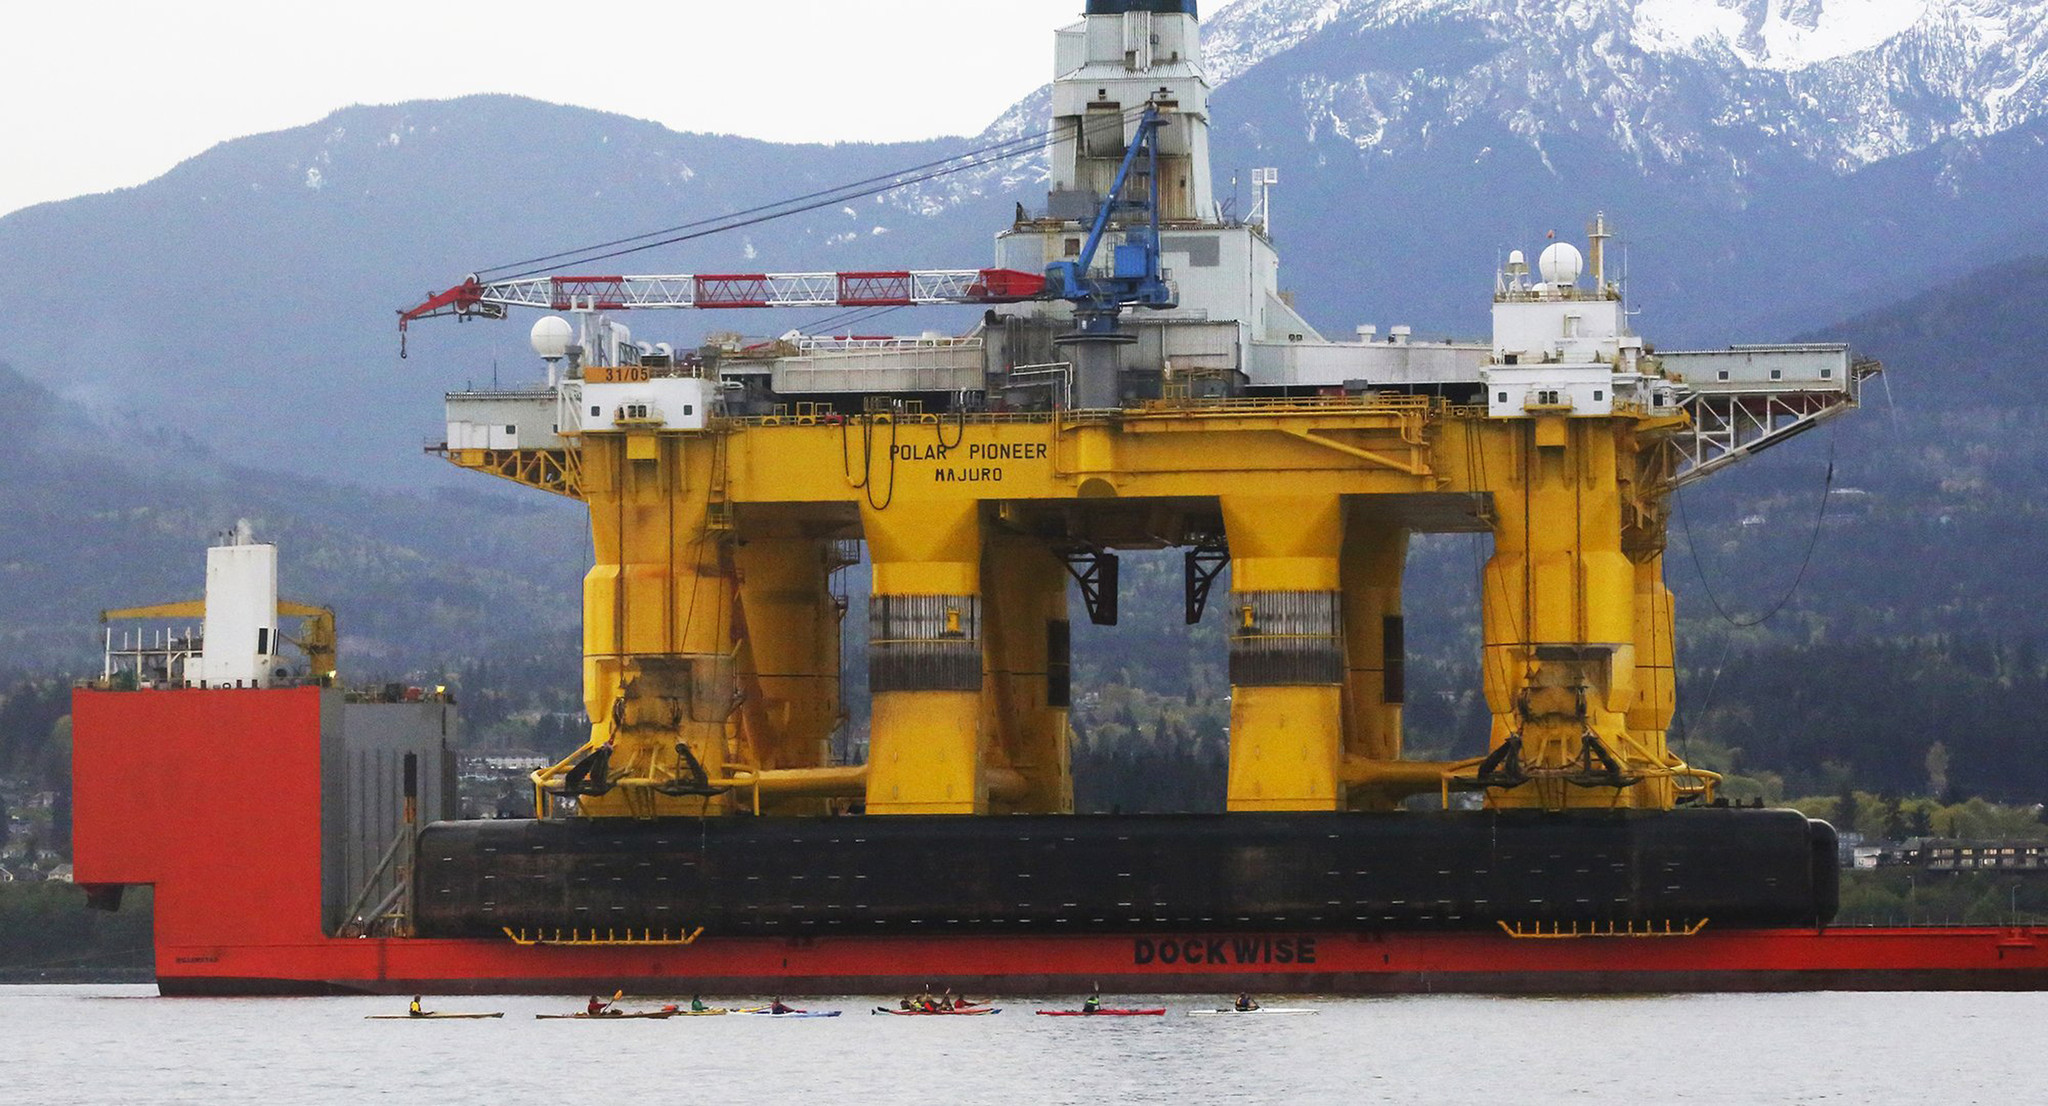 arctic oil drilling essay 2015-6-8 as the us and russia take the first steps to drill for oil and gas in the arctic ocean, experts say the harsh climate, icy seas, and lack of infrastructure means a sizeable oil spill would be very difficult to clean up and could cause extensive environmental damage.